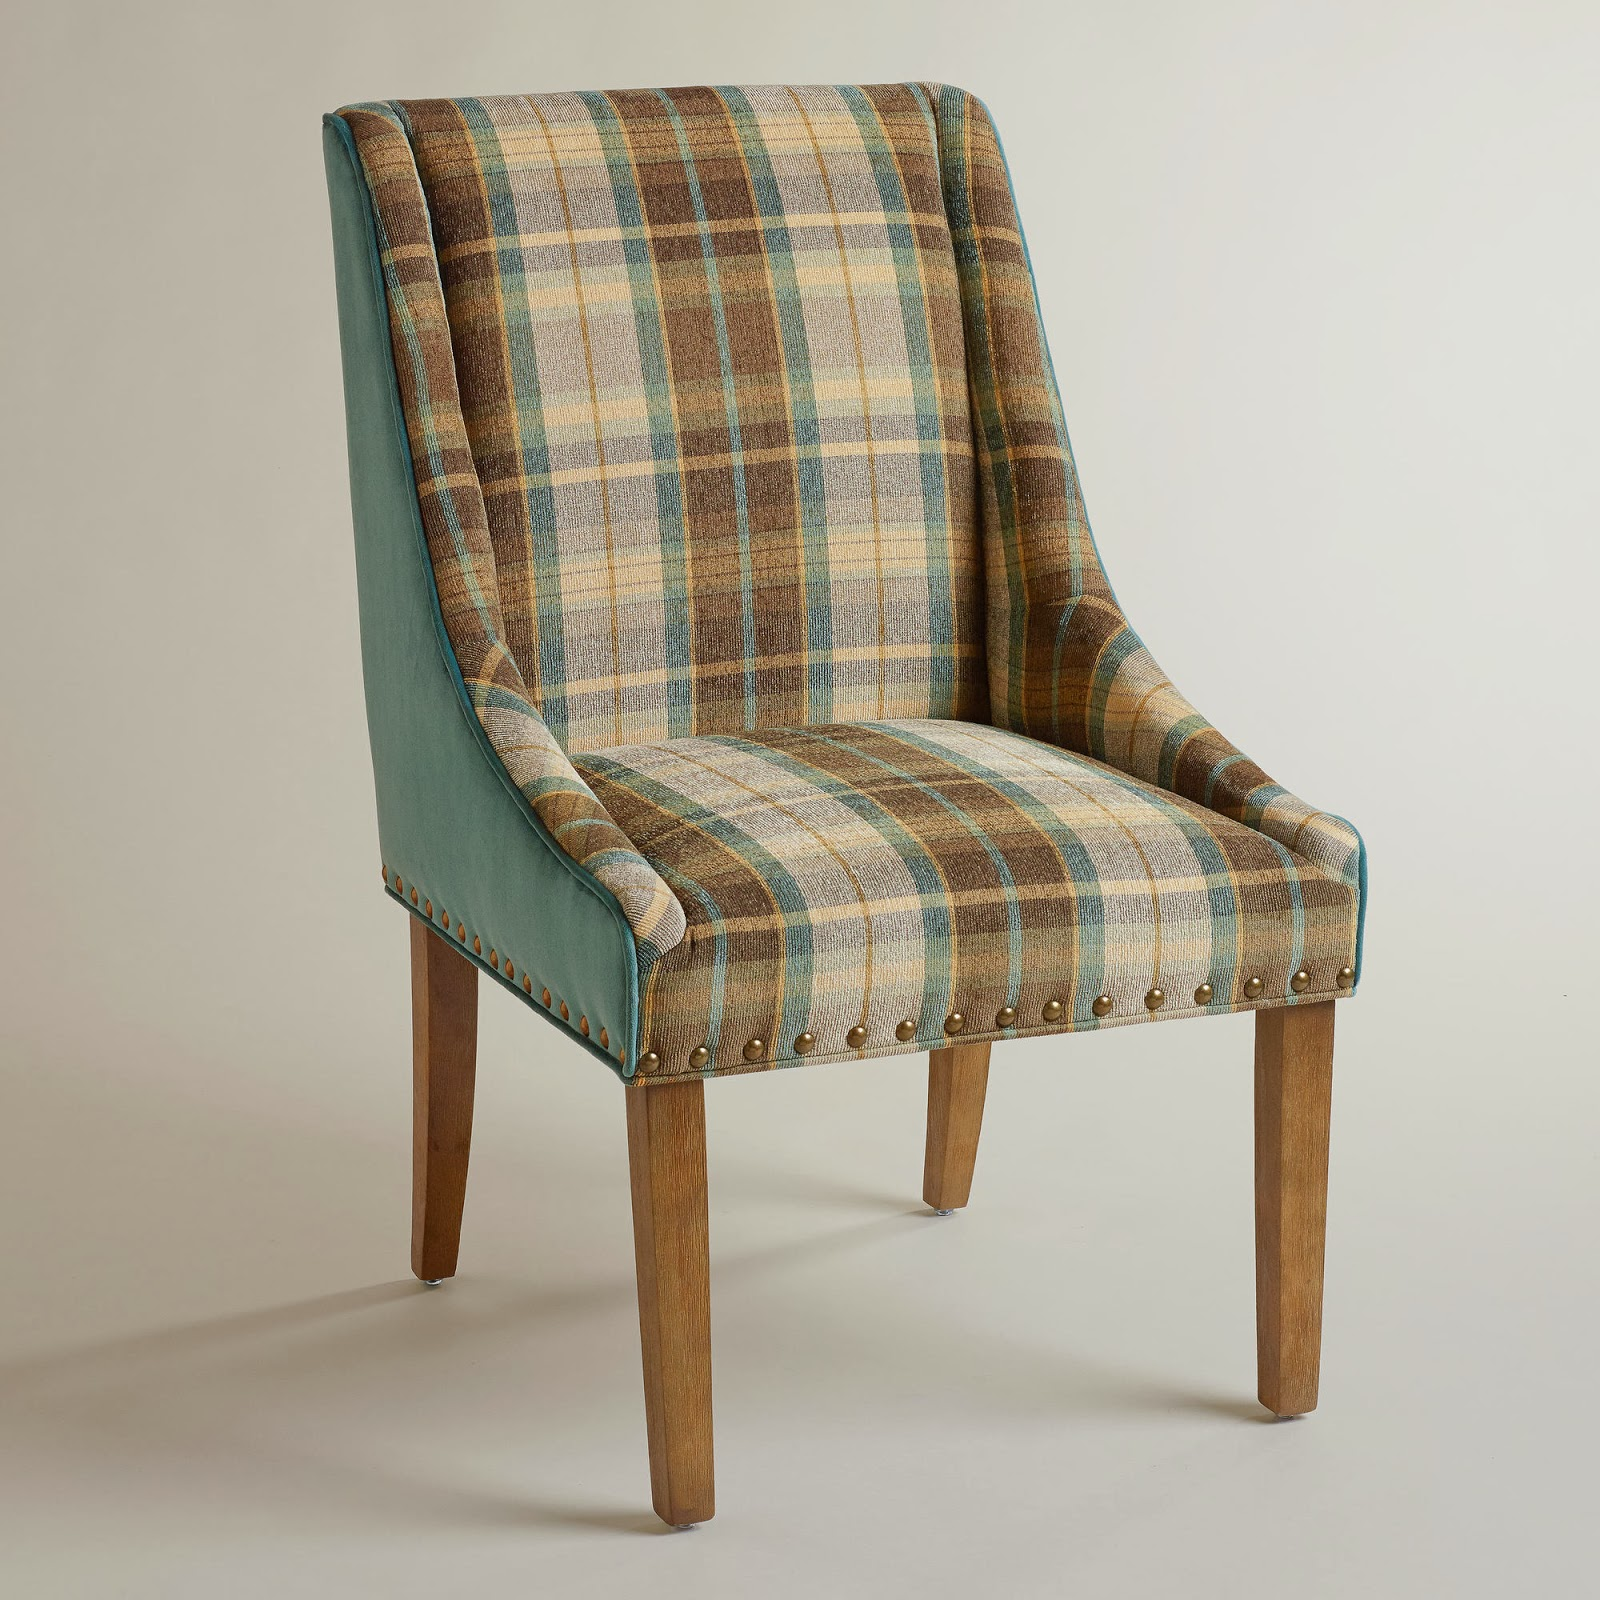 World Market Red Leather Chair: Retropolitan: Plaid Is Rad!?